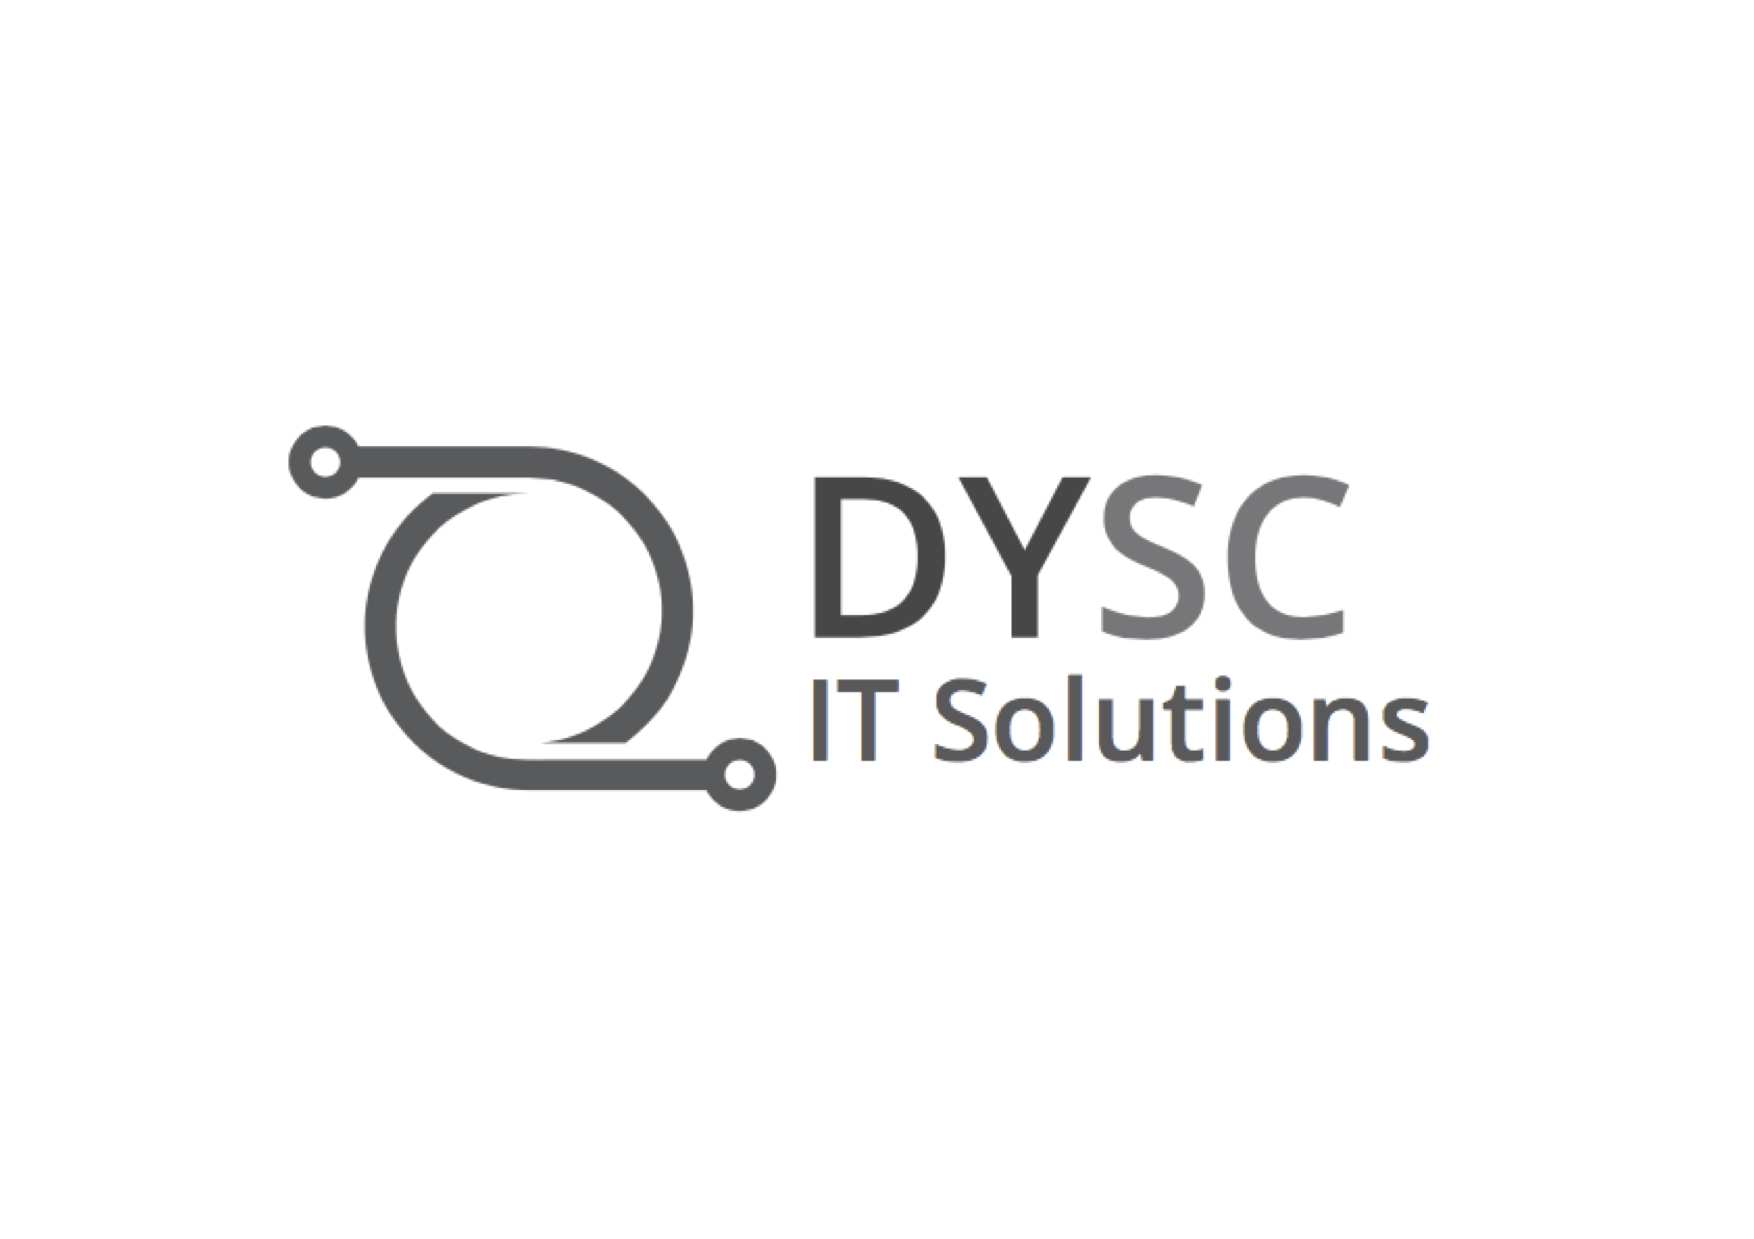 DYSC IT Solutions